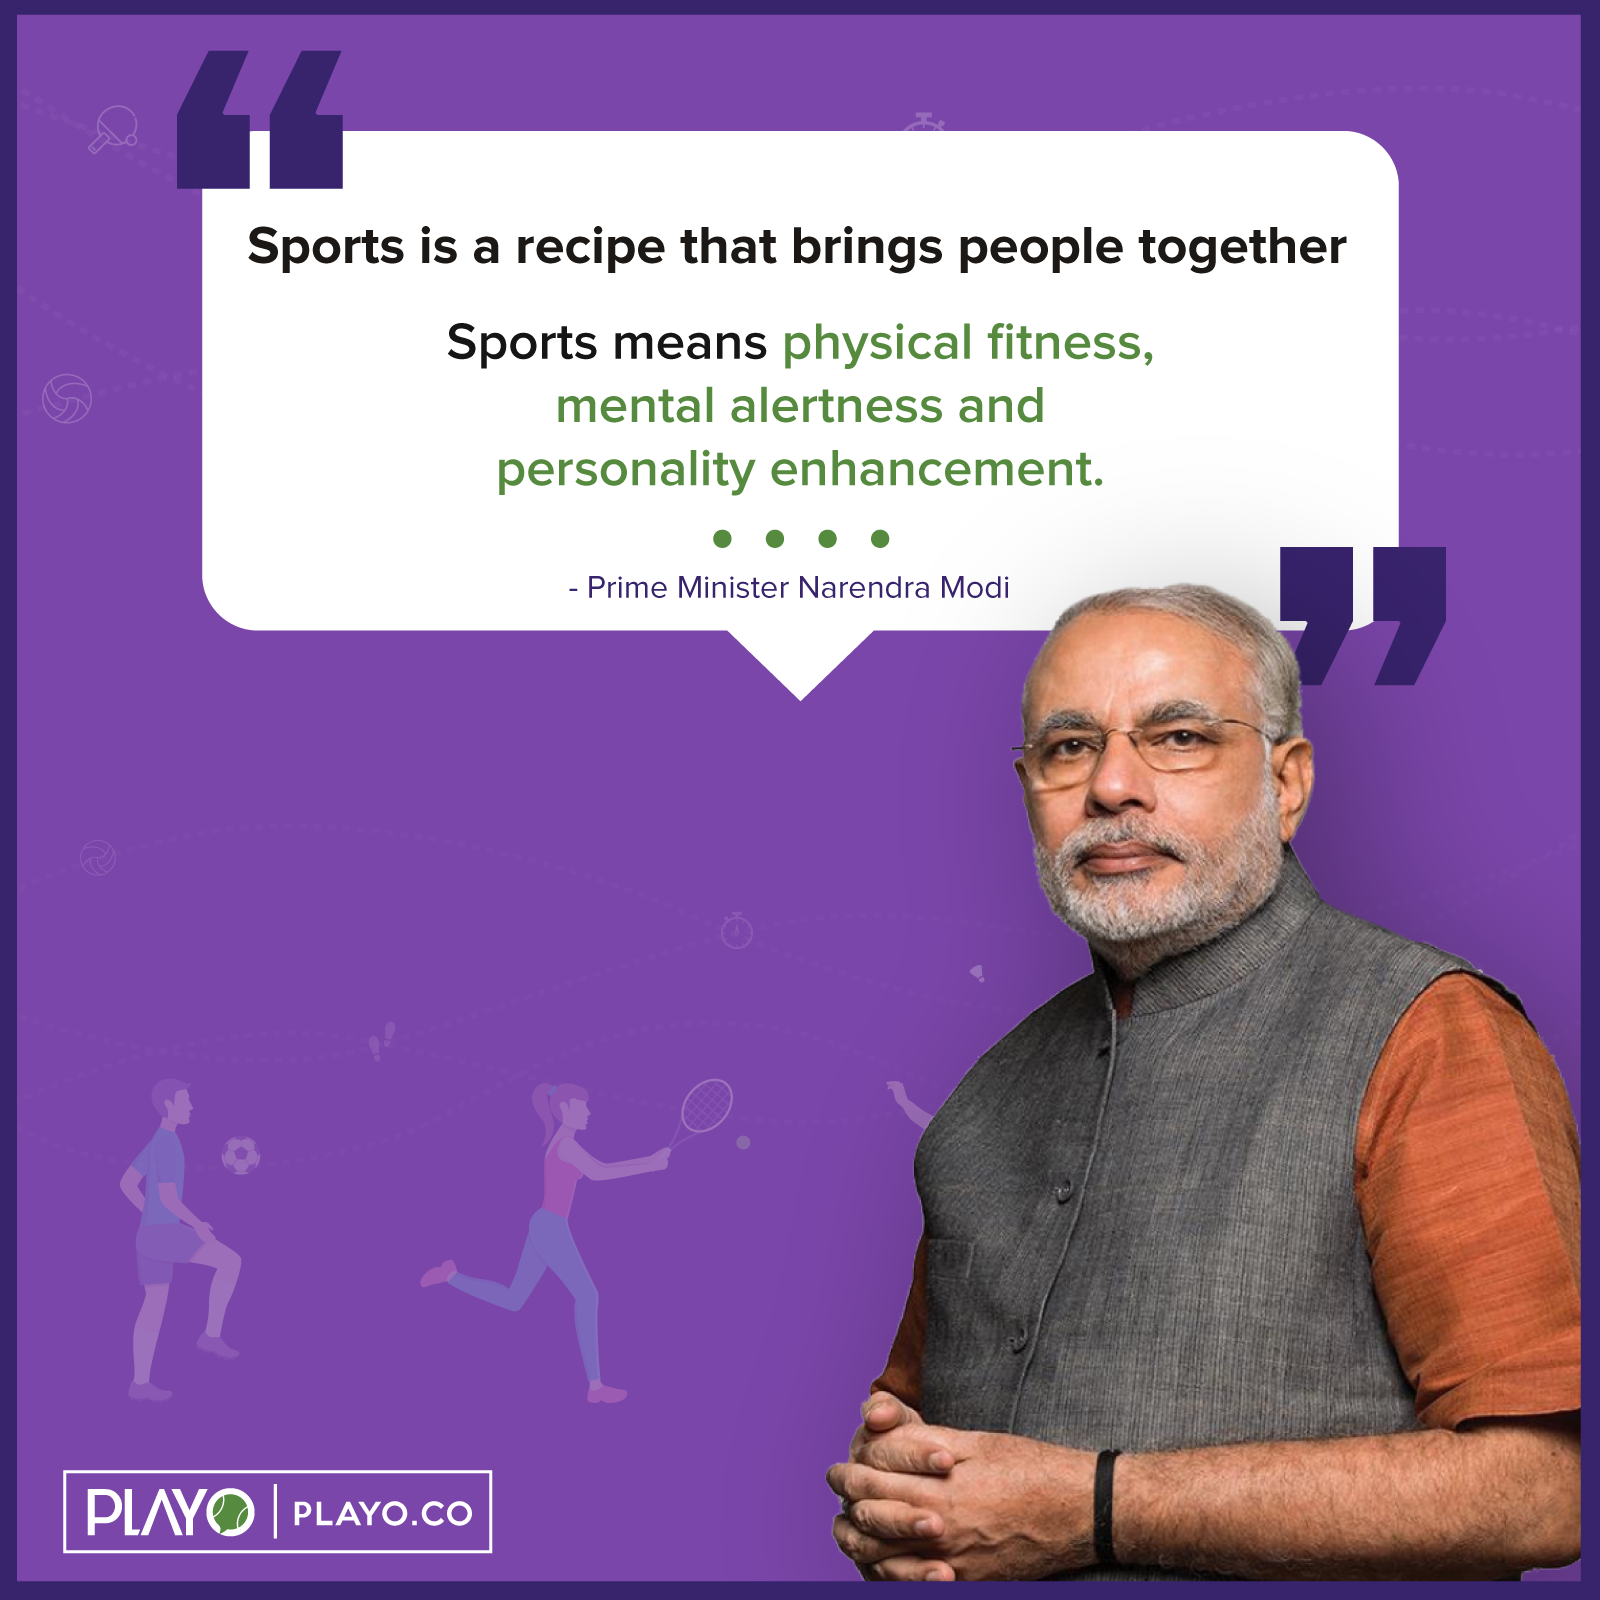 modi talking about the importance of sports